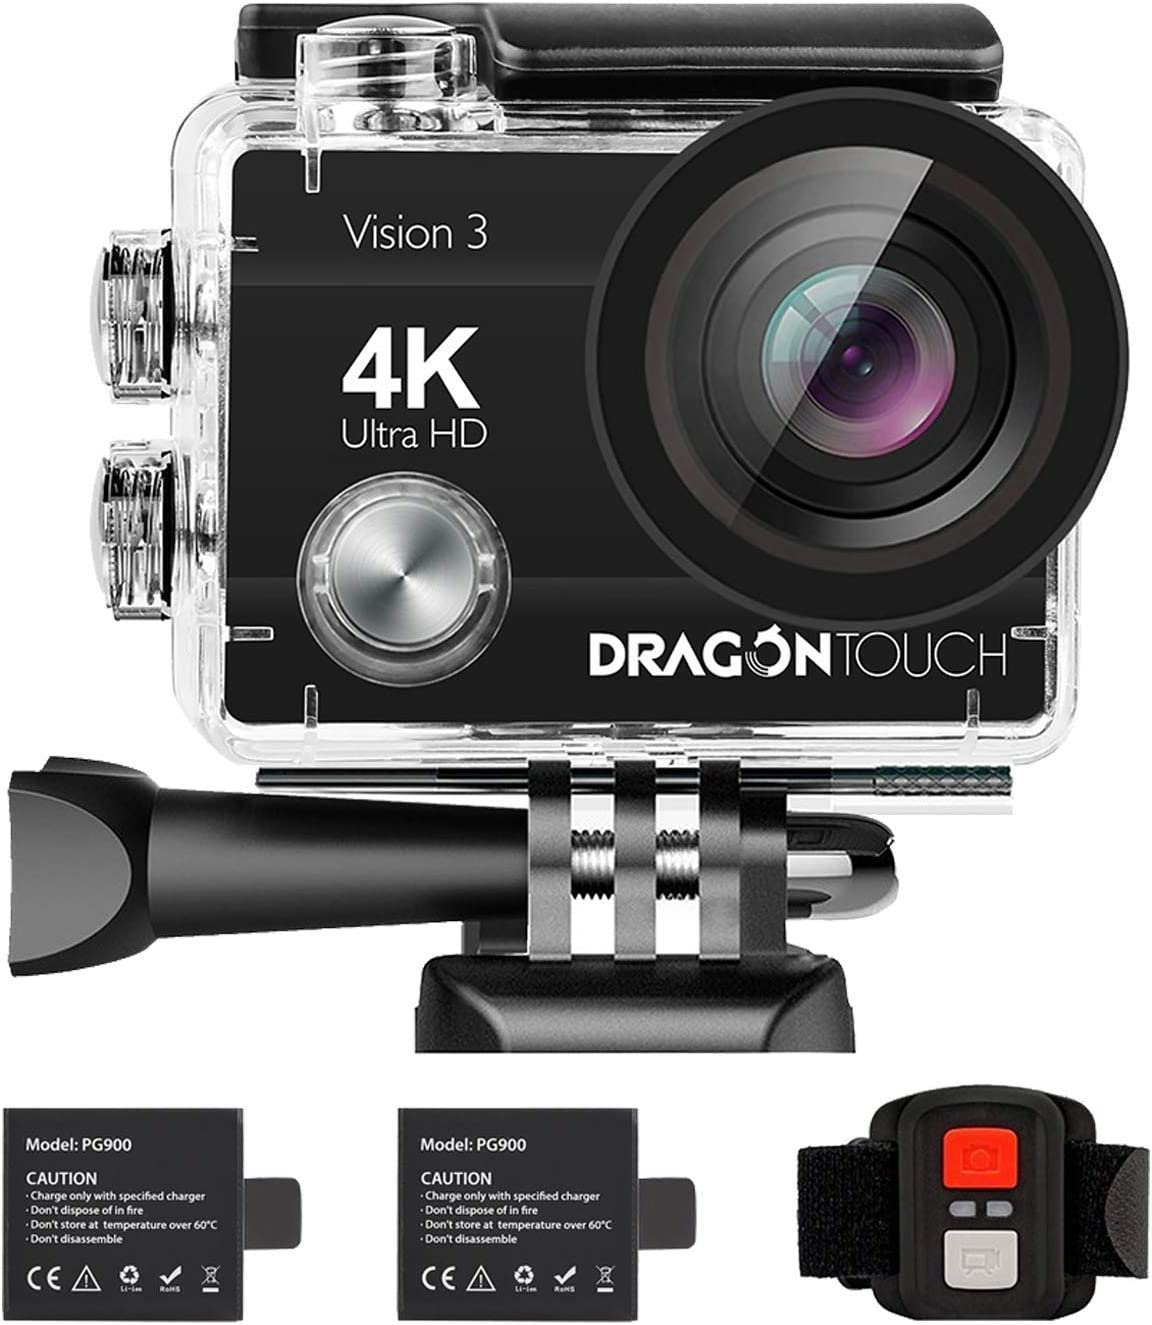 Dragon Touch 4K Action Camera 16MP Vision 3 Underwater Waterproof Camera PC Webcam 170° Wide Angle WiFi Sports Cam with Remote 2 Batteries and Mounting Accessories Kit : Camera & Photo